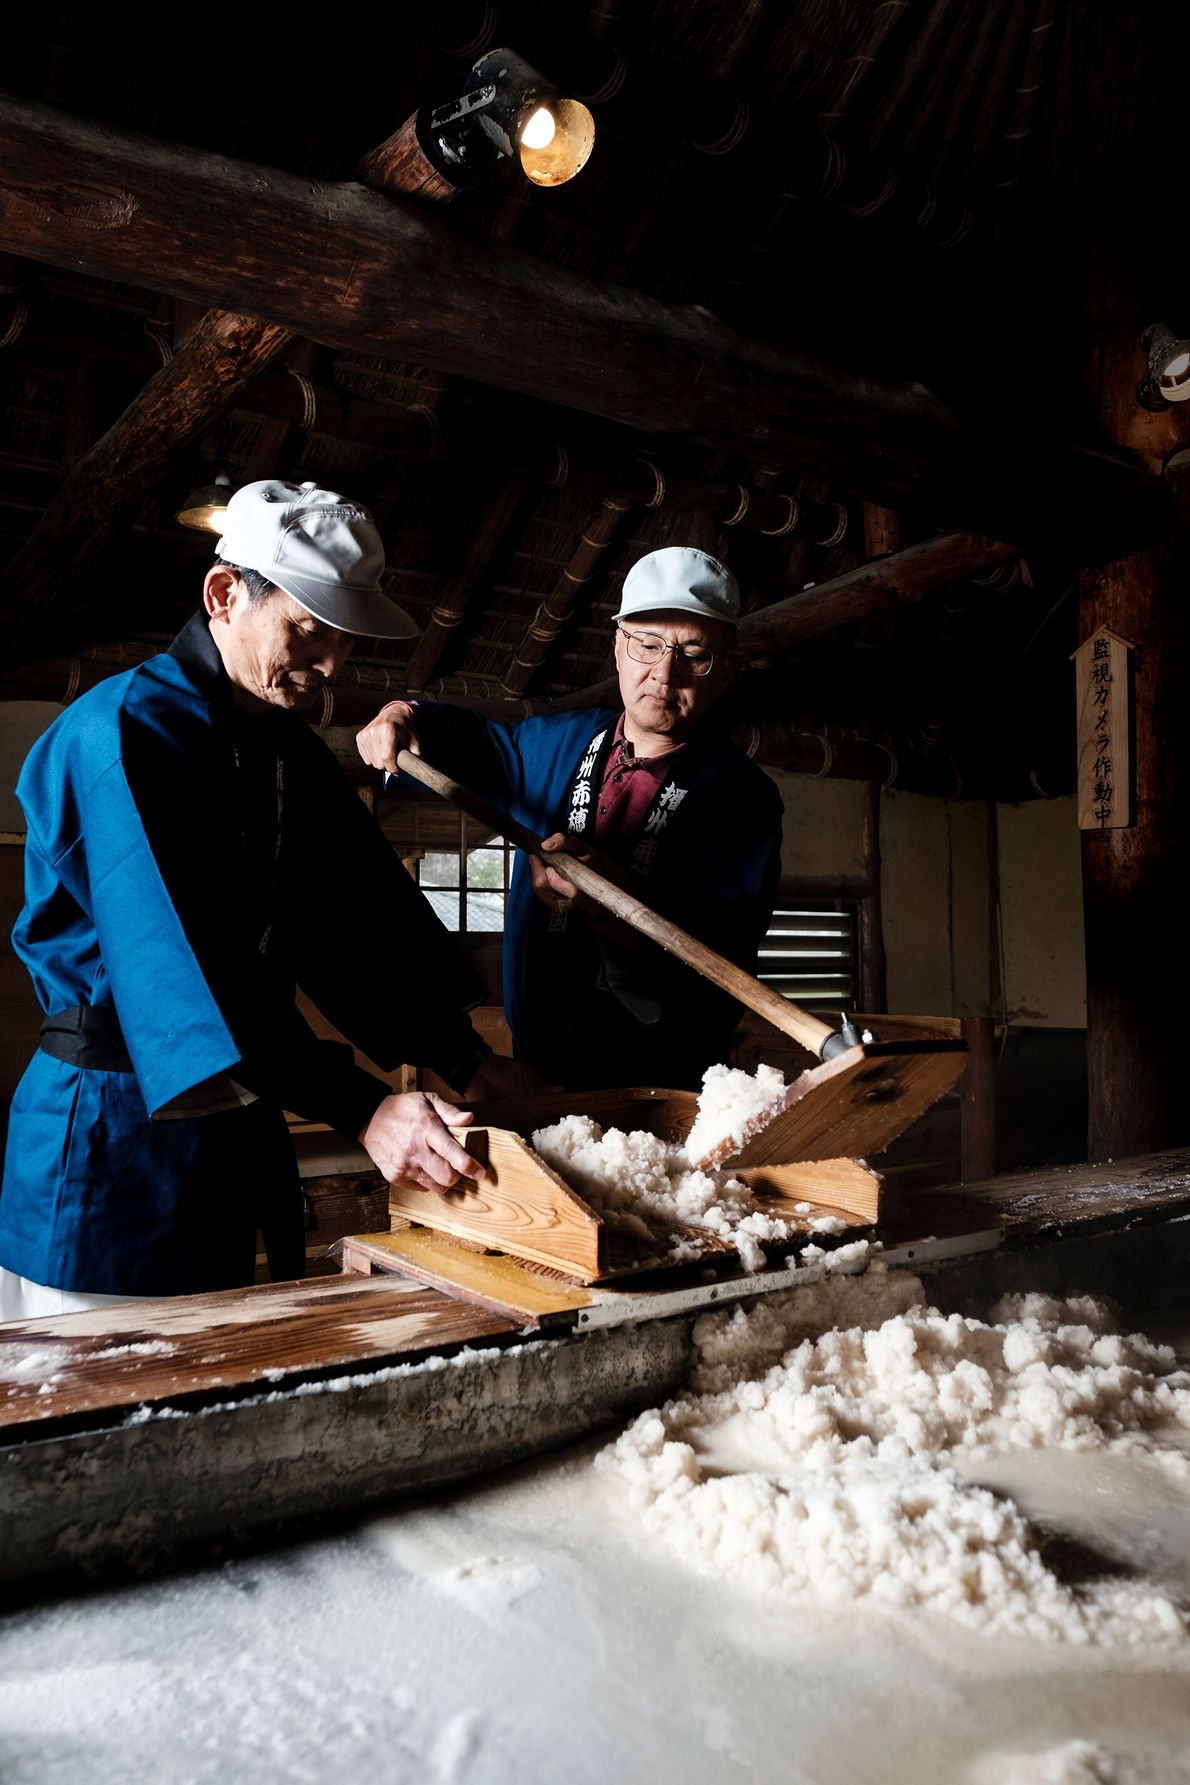 The city of Ako has long been known for its salt production, and the Ako Marine ...